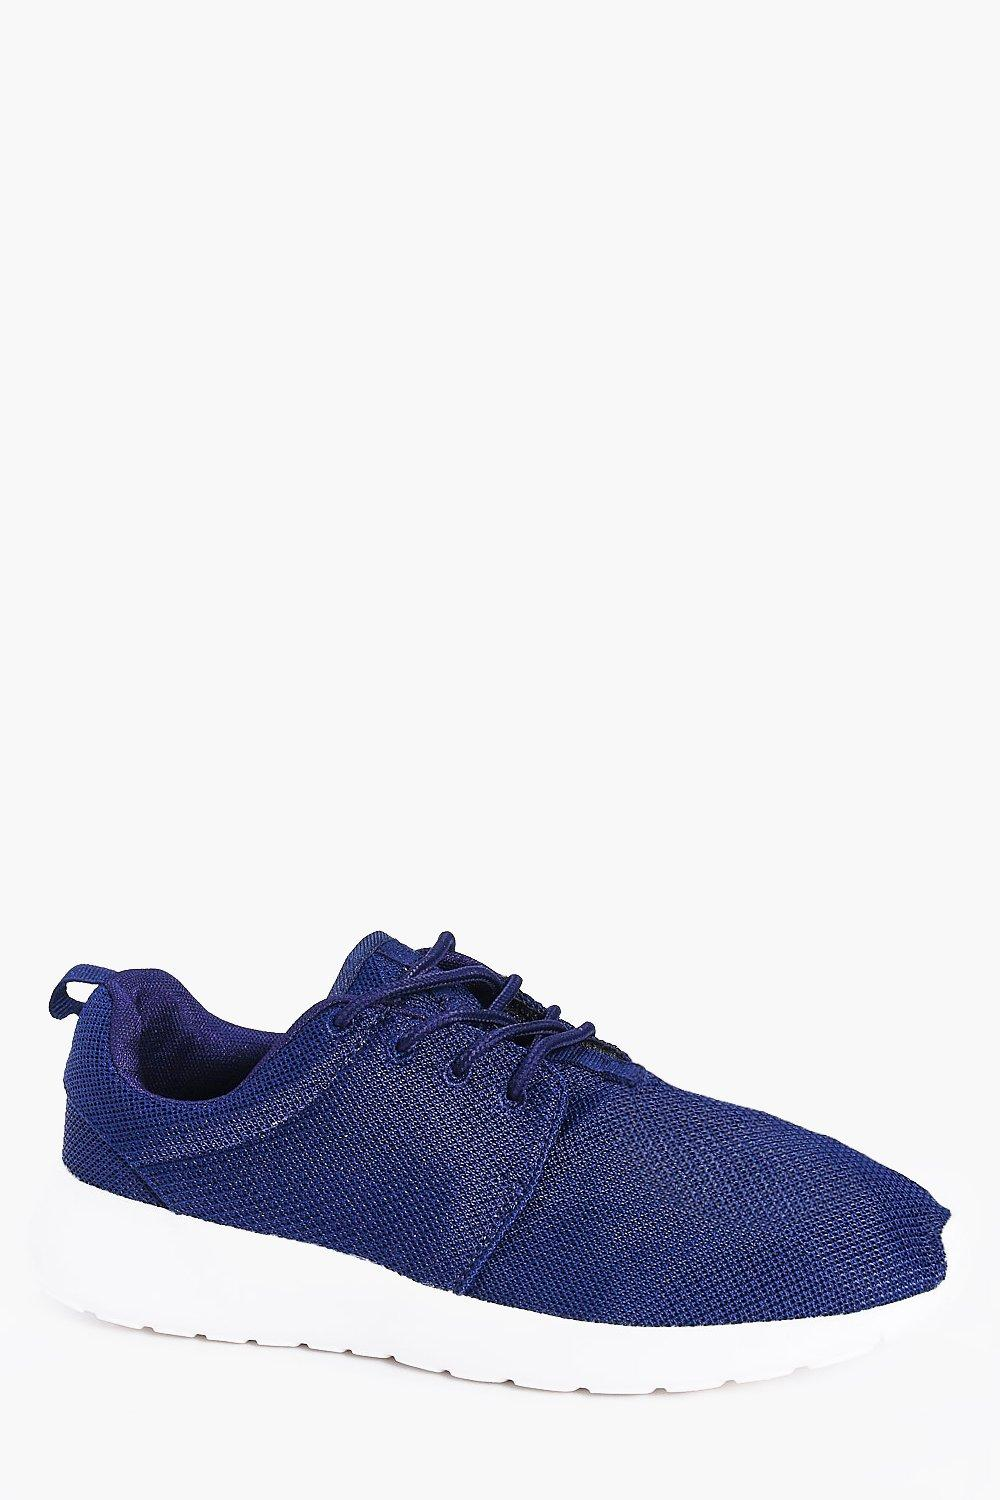 Product photo of Running trainers navy